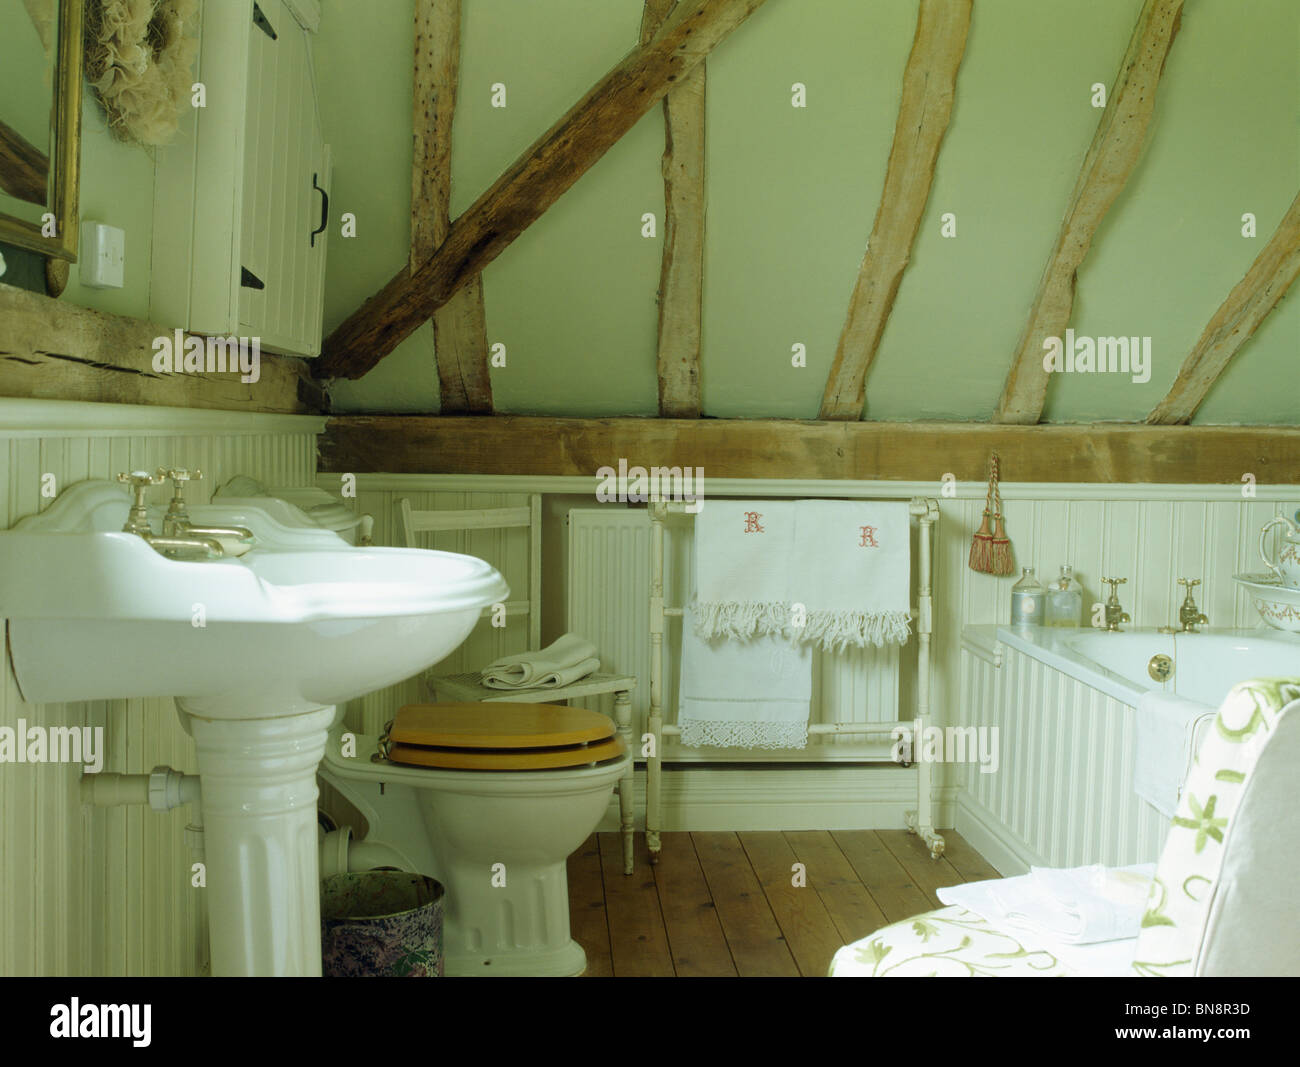 White pedestal basin in bathroom with low beamed ceiling Stock Photo ...